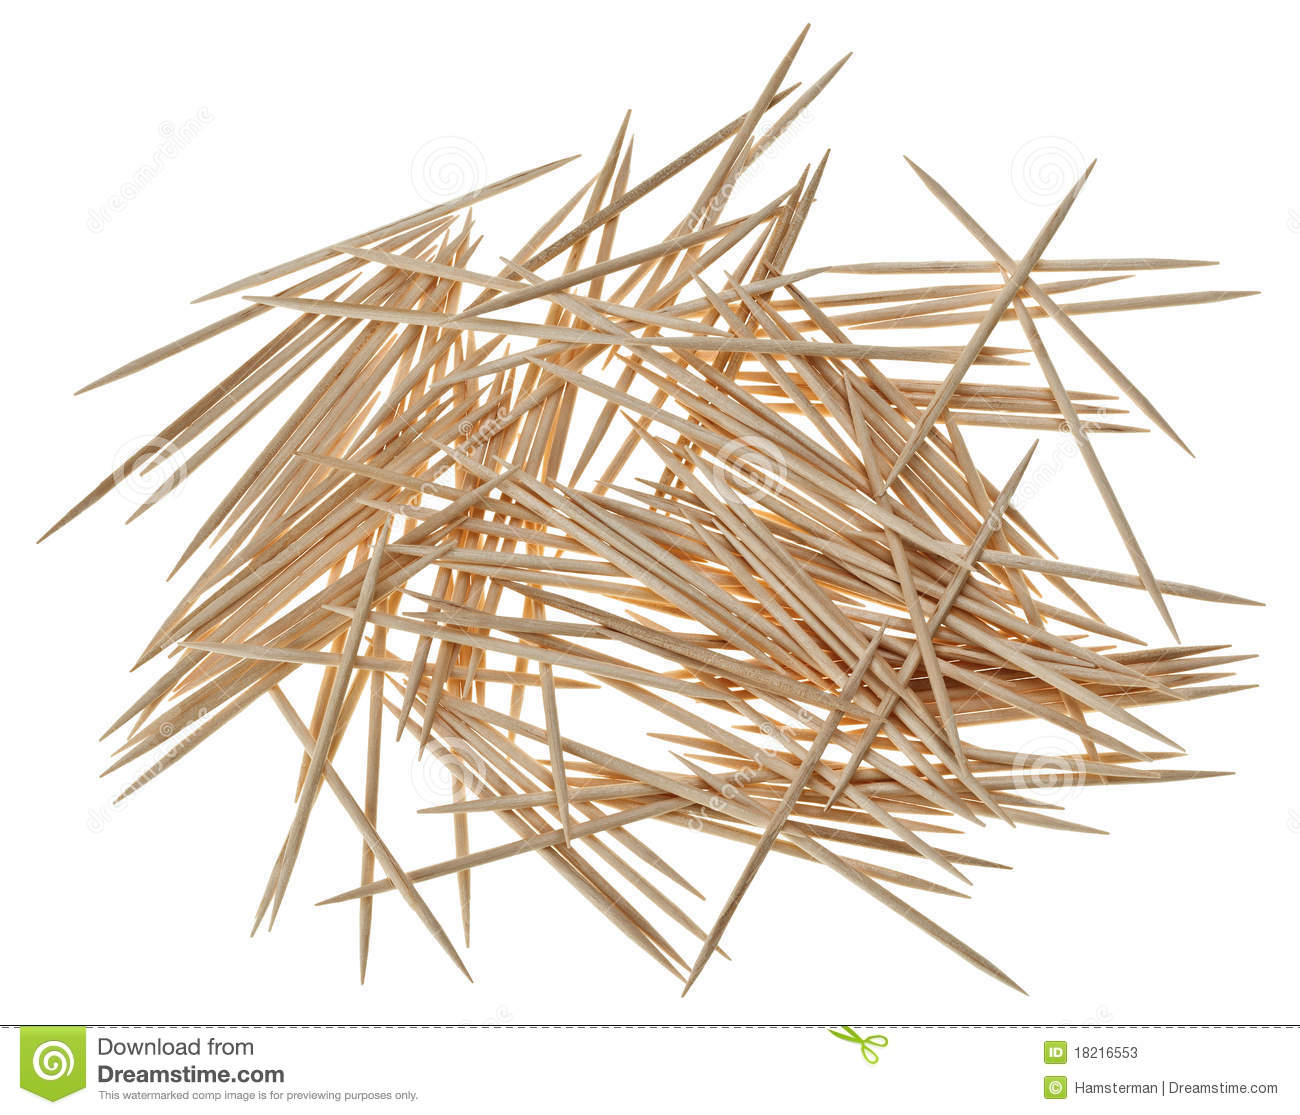 Bamboo Toothpicks Stock Photos, Images, & Pictures.